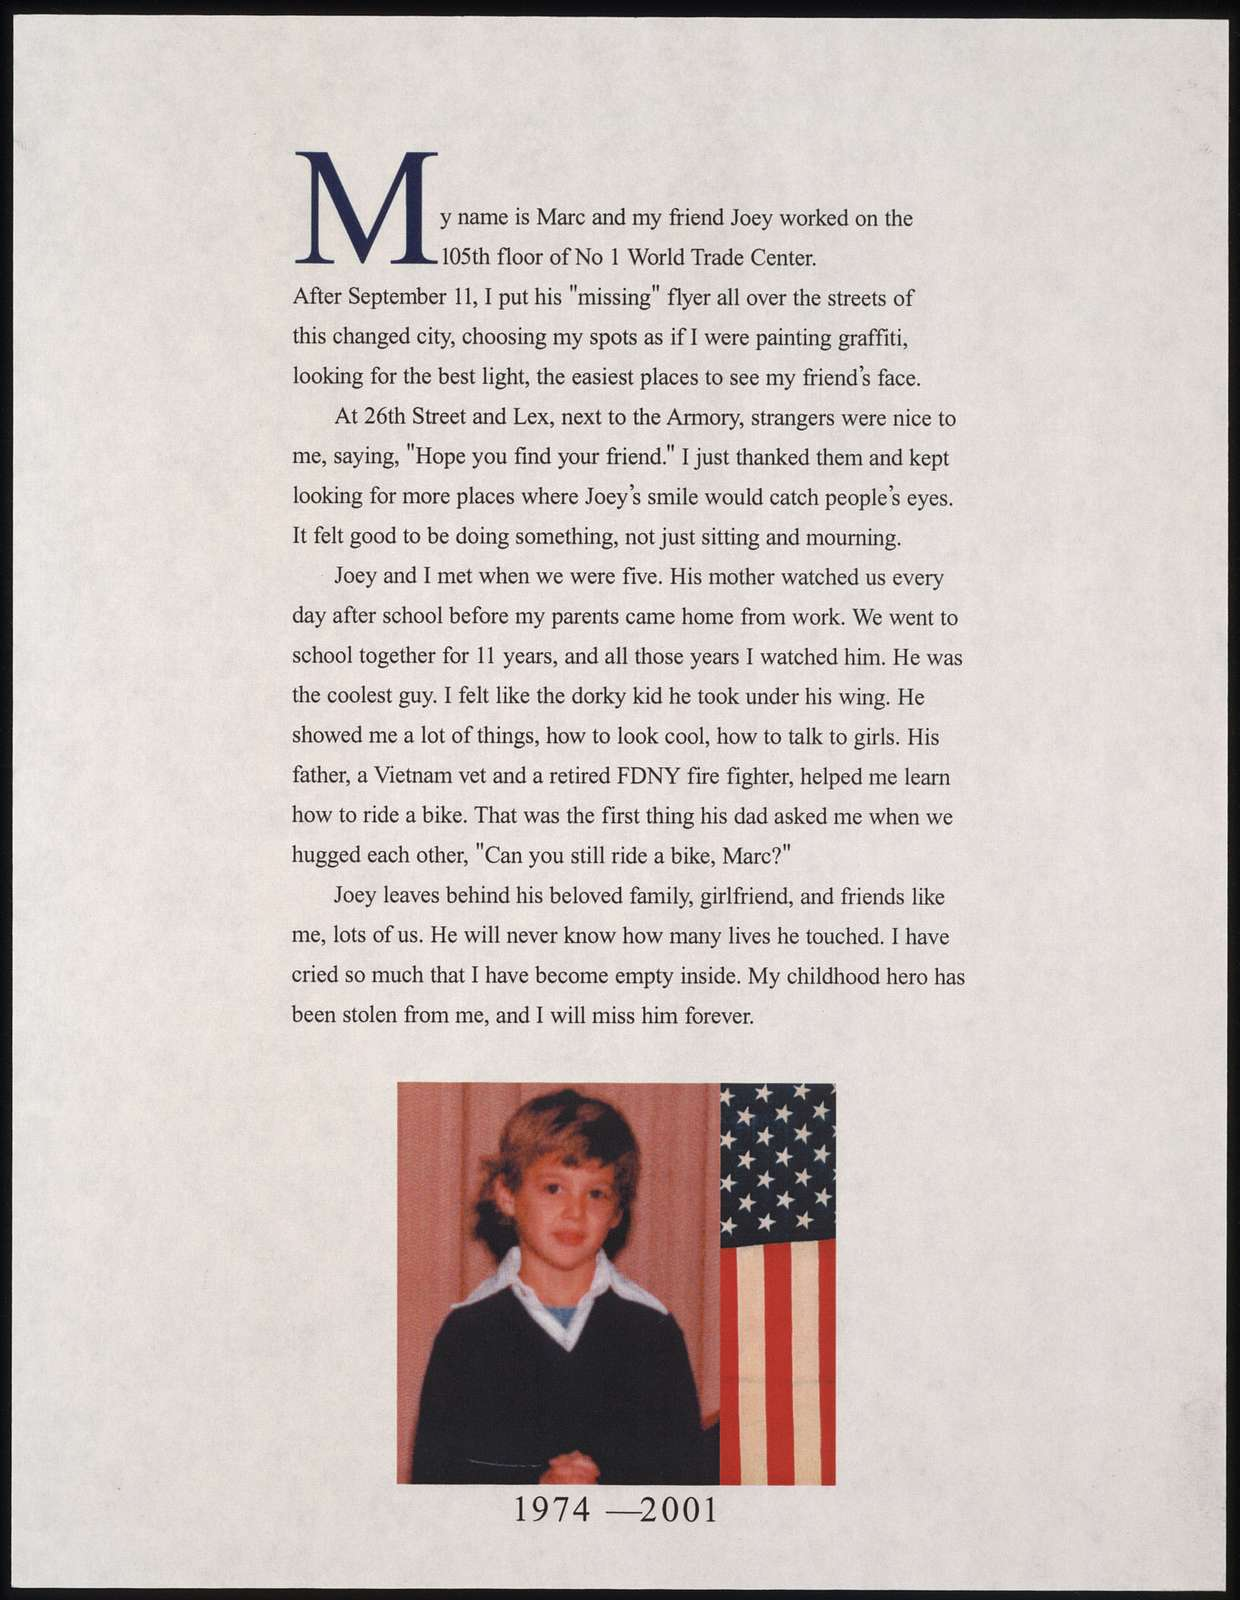 My name is Marc and my friend Joey worked on the 105th floor of No. 1 World Trade Center ... / Marc Whalen.